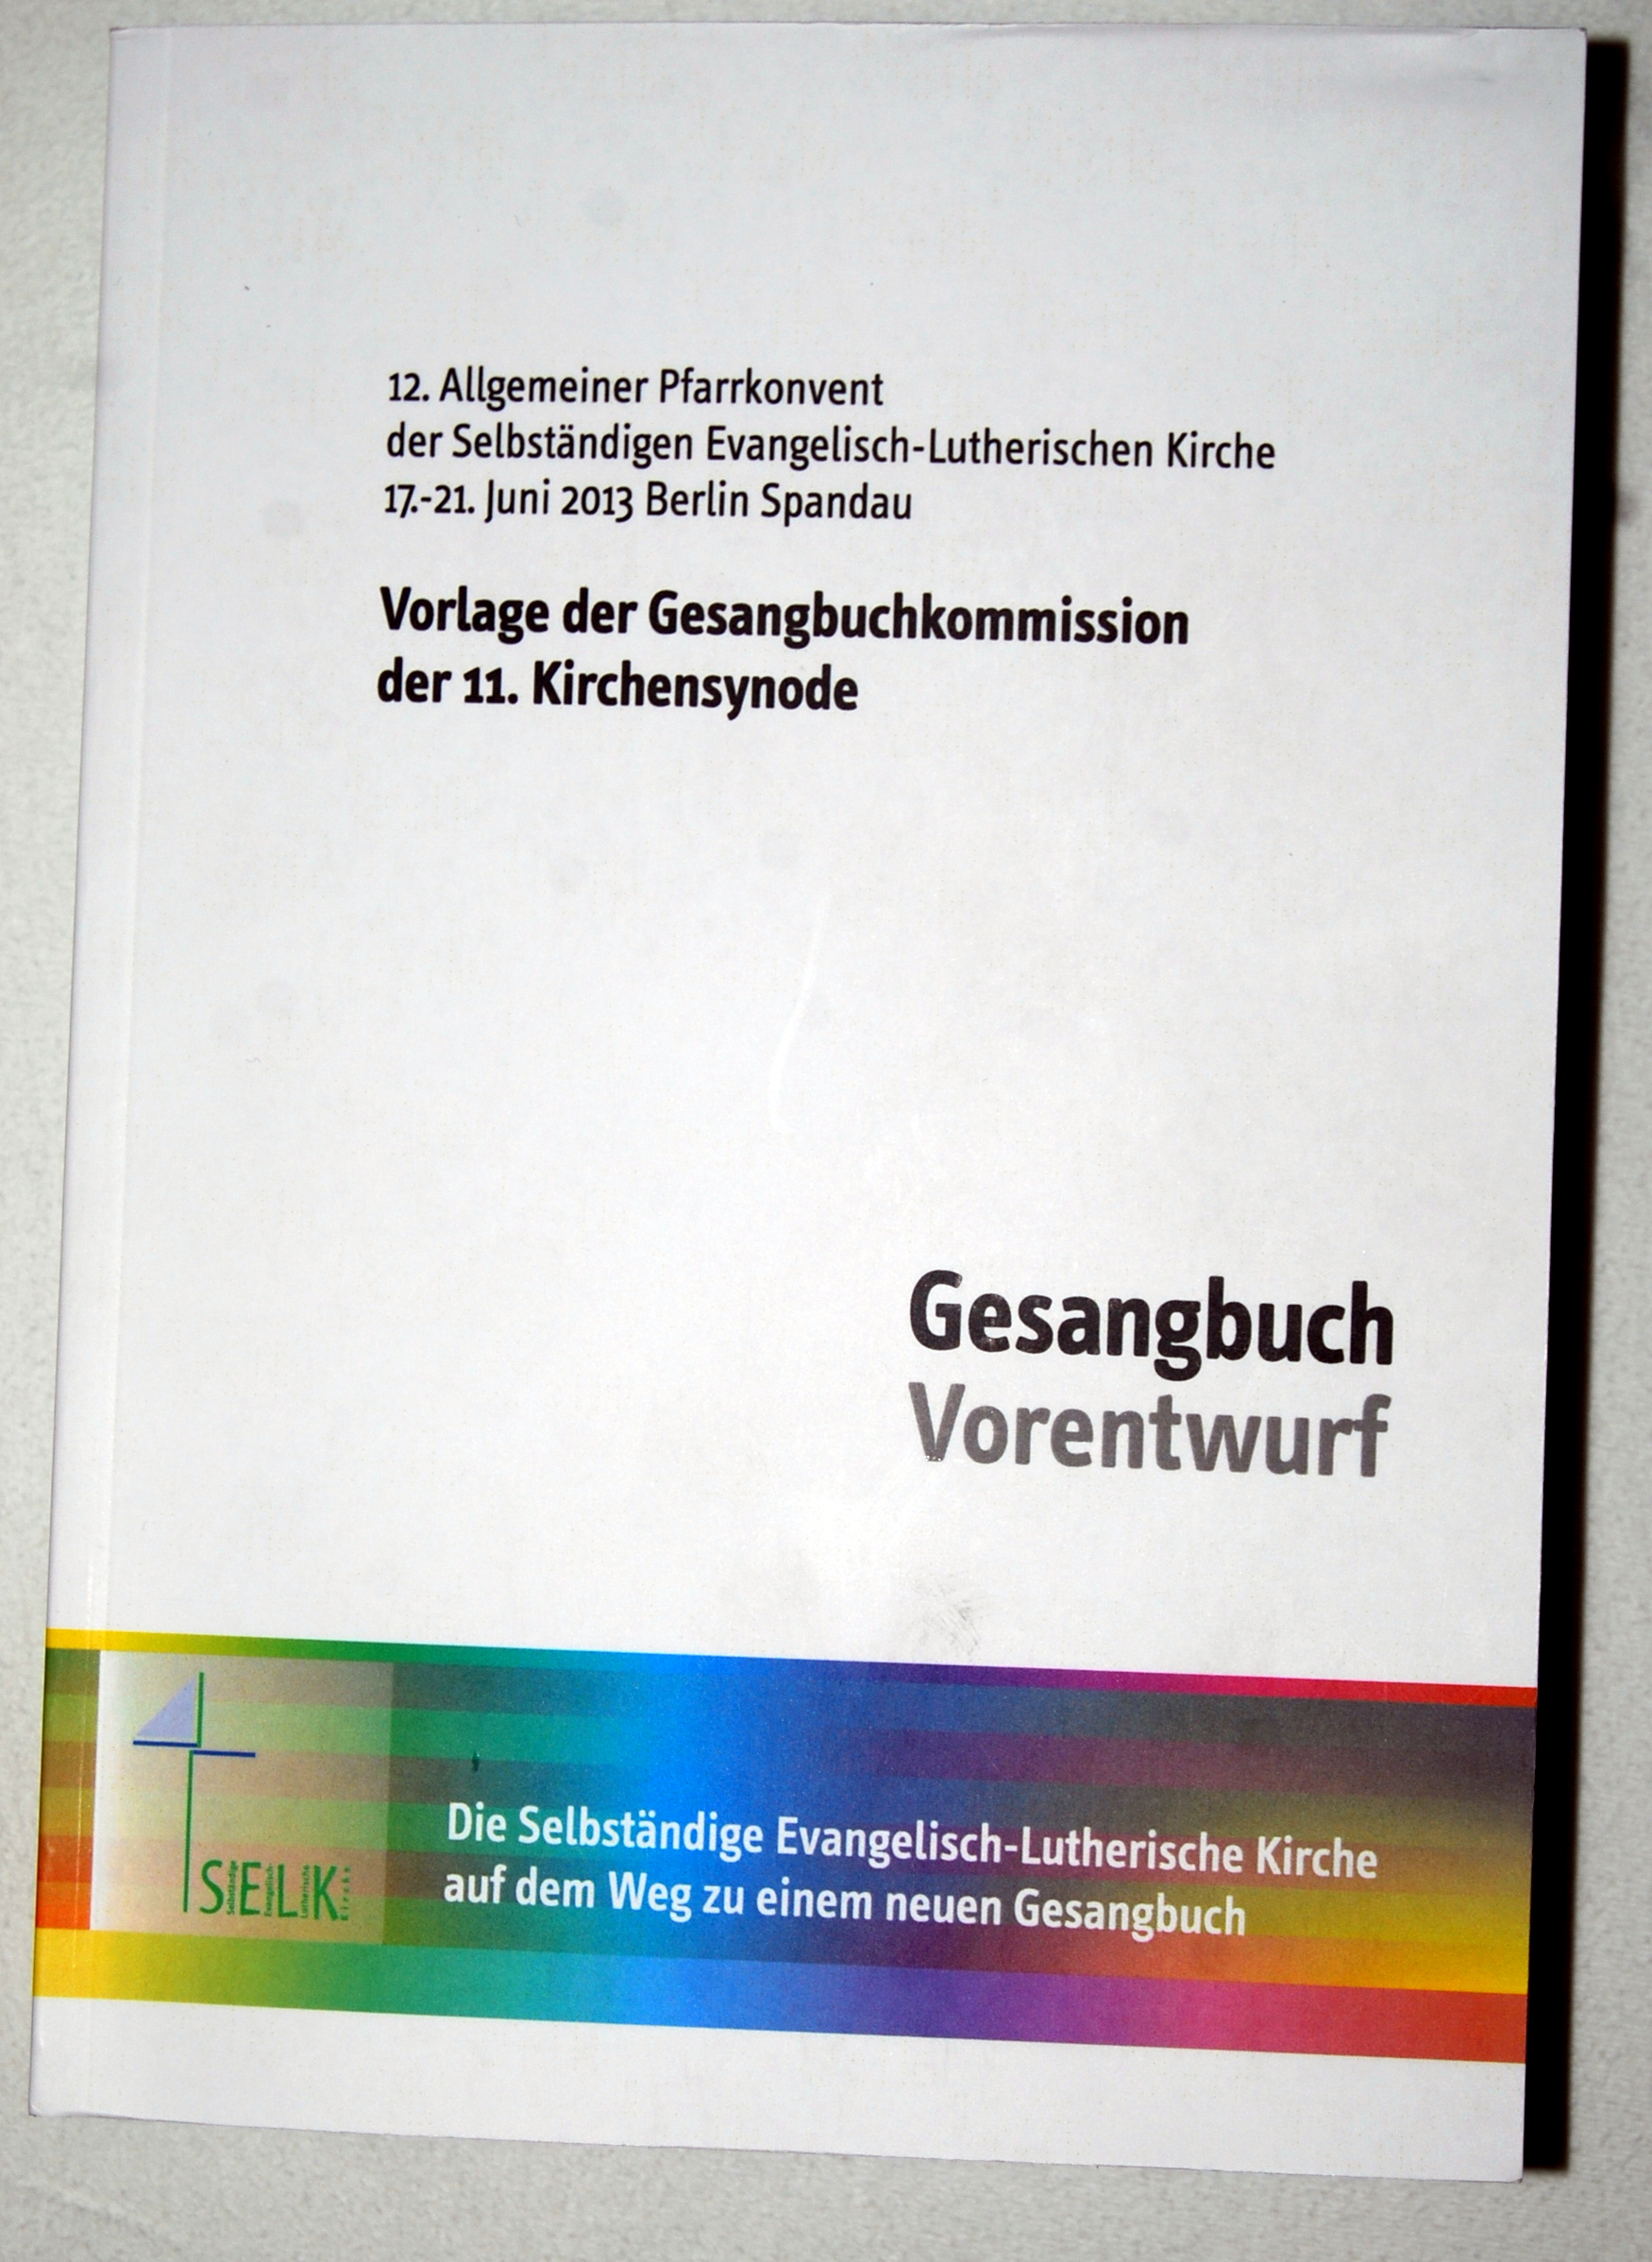 Commentary: SELK-Gesangbuch | Wilhelm\'s space